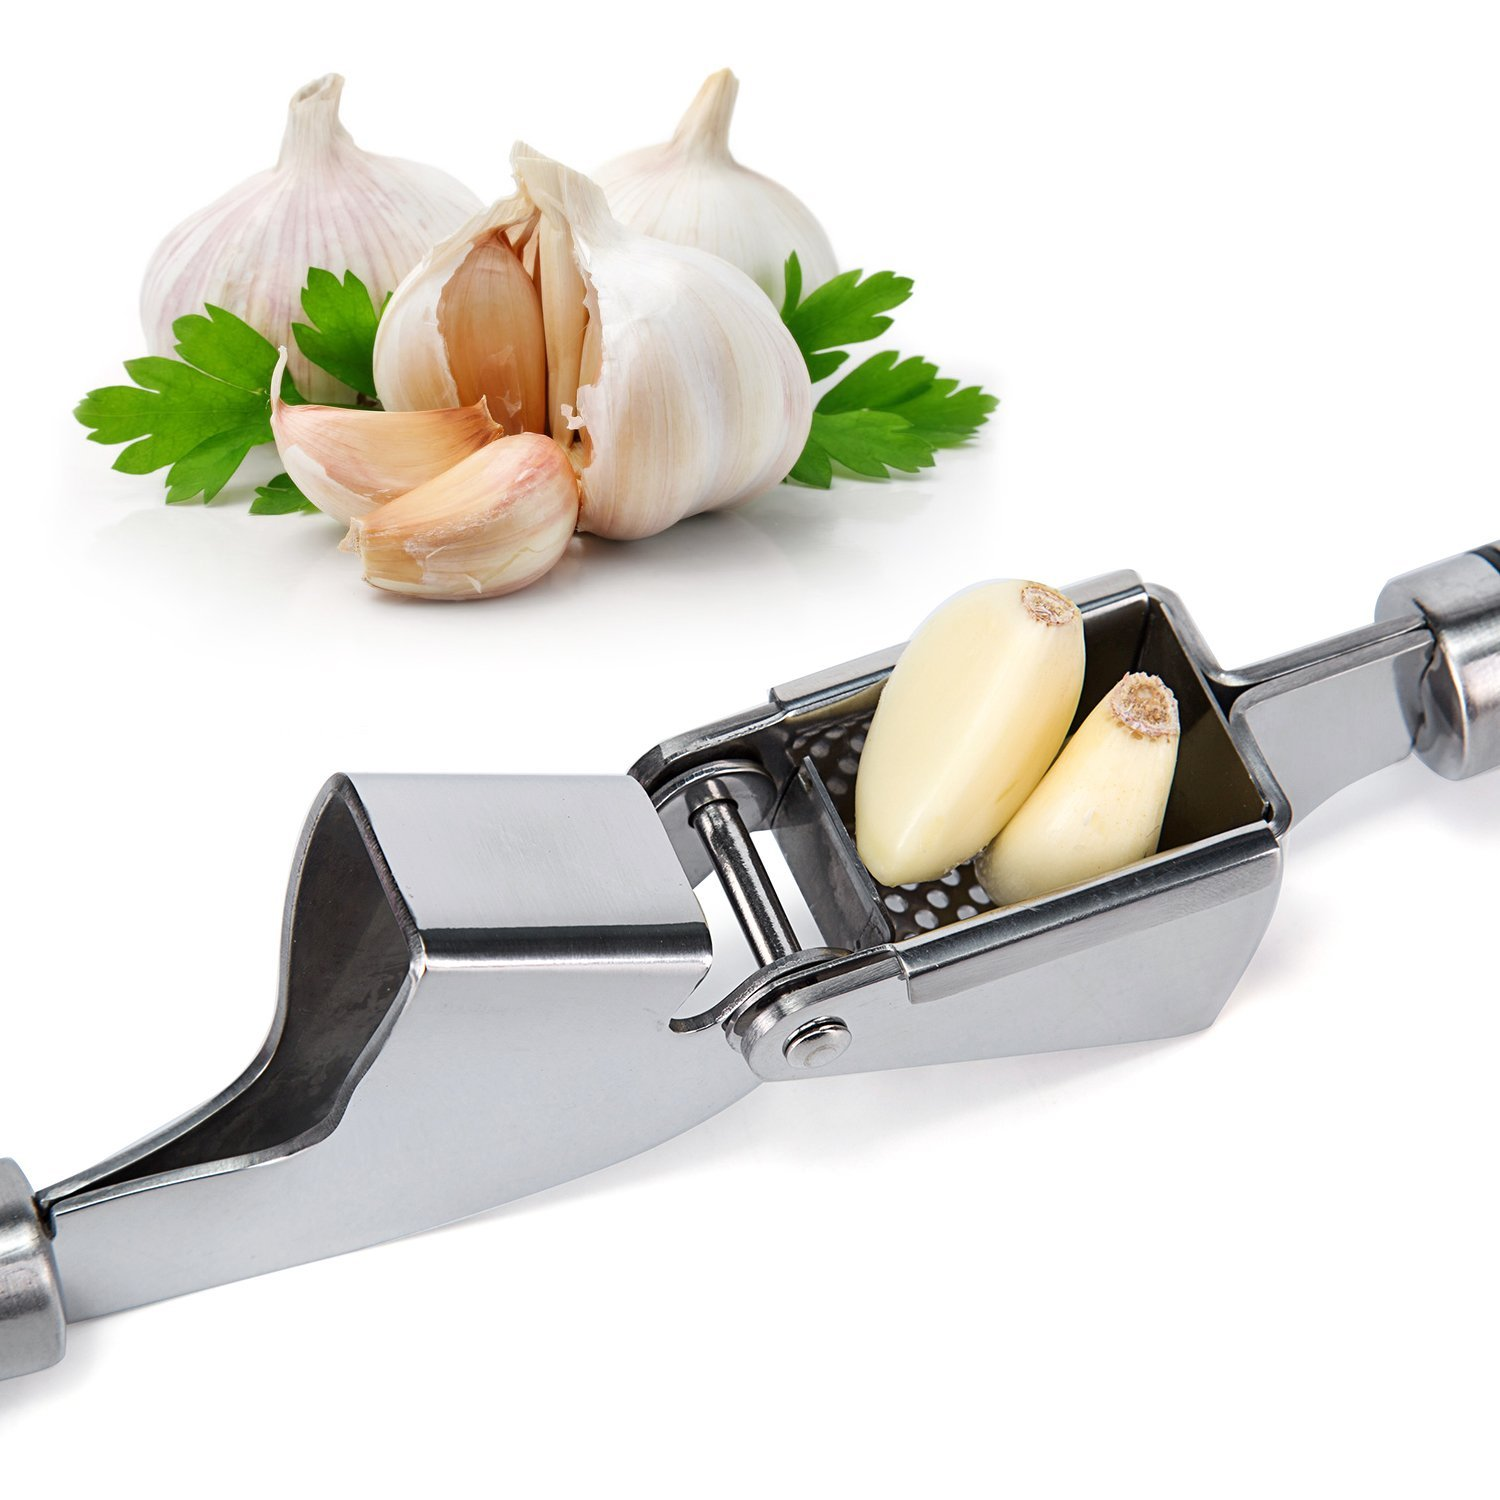 Orblue Propresser Garlic Press and Peeler Set